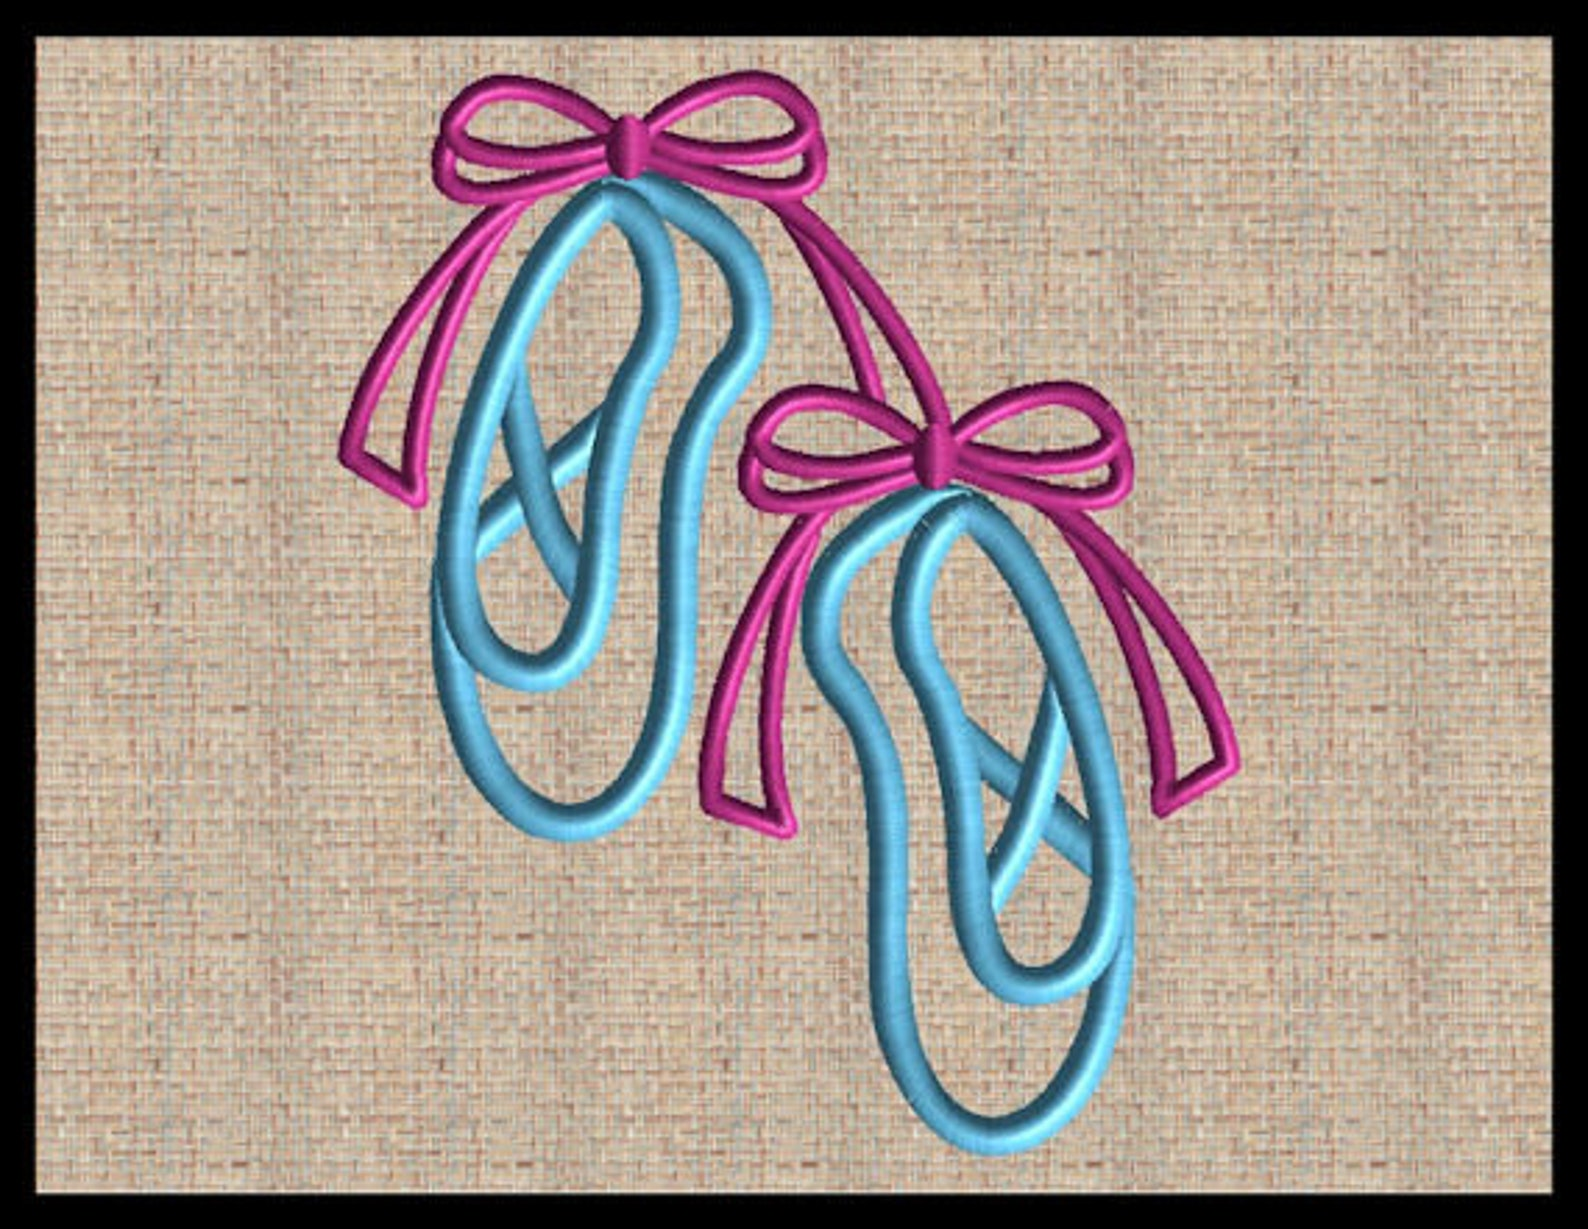 ballet shoes embroidery design ballerina slippers machine embroidery dance shoe with bows embroidery design 4 sizes 4x4 5x5 6x6